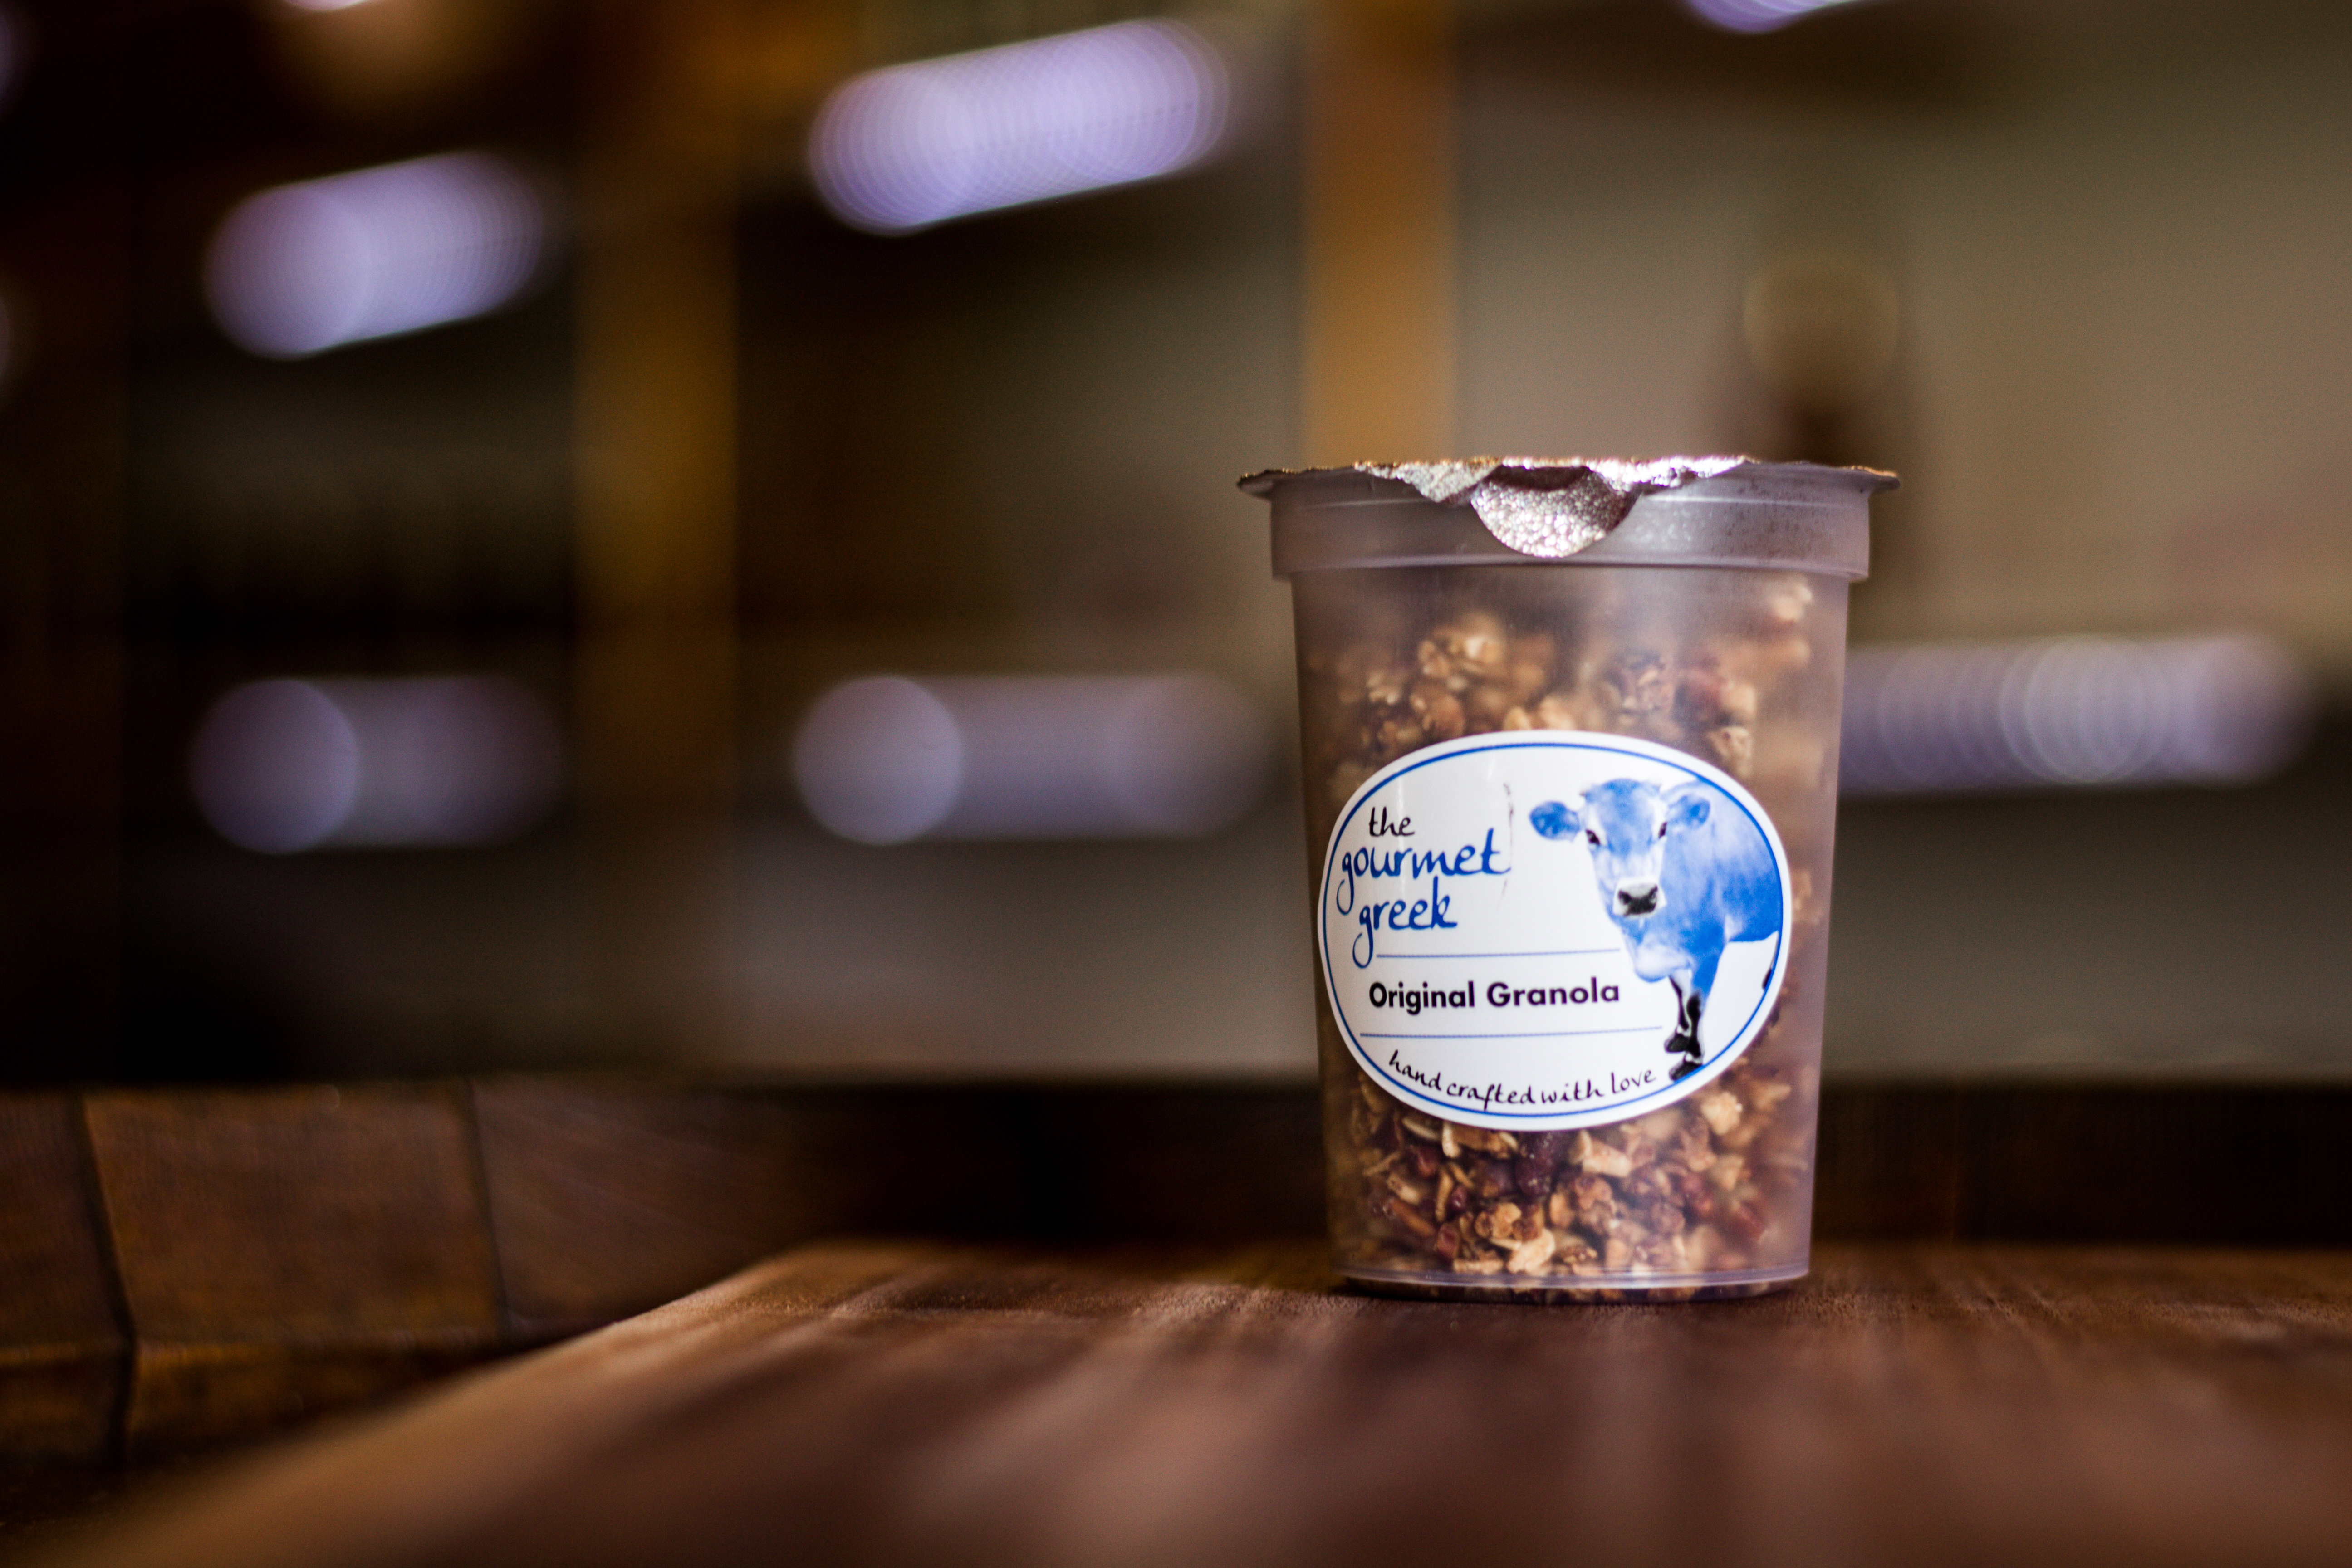 The Gourmet Greek Granola